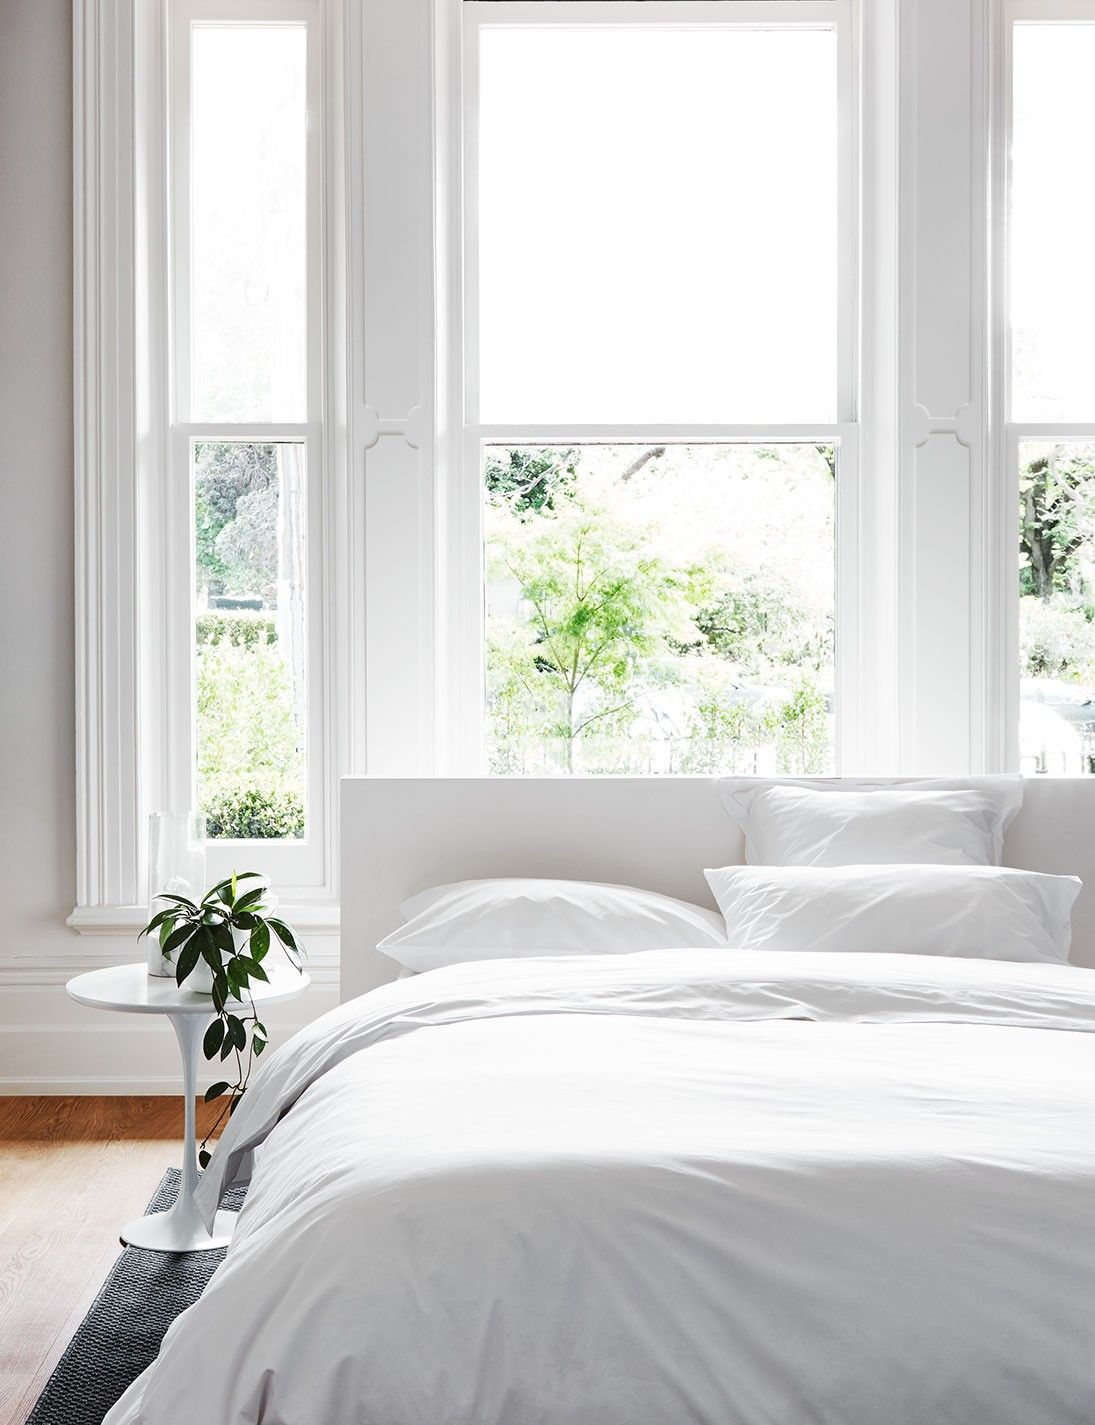 Egyptian Cotton Sheets - Milano - Luxury Bed Sheets - Abode Living ...